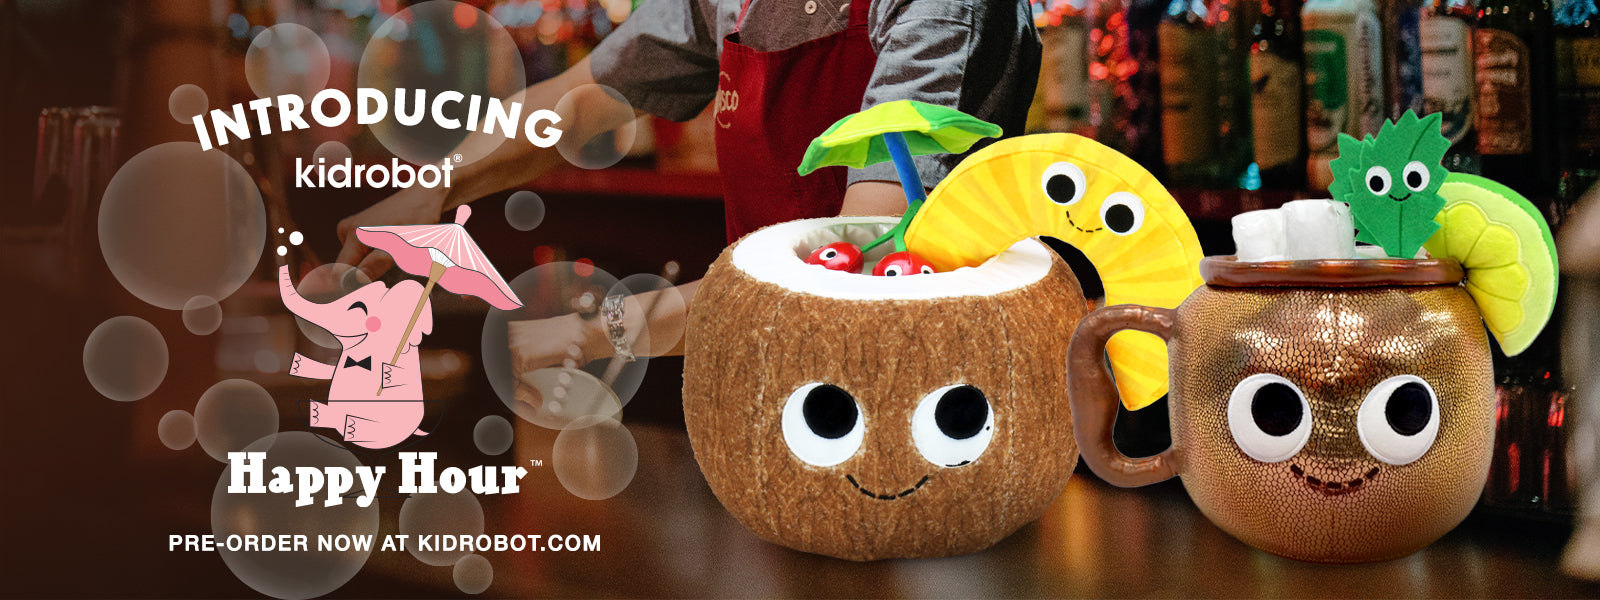 Happy Hour Plush by Kidrobot - Alcohol Drinks in Plush form for Adults